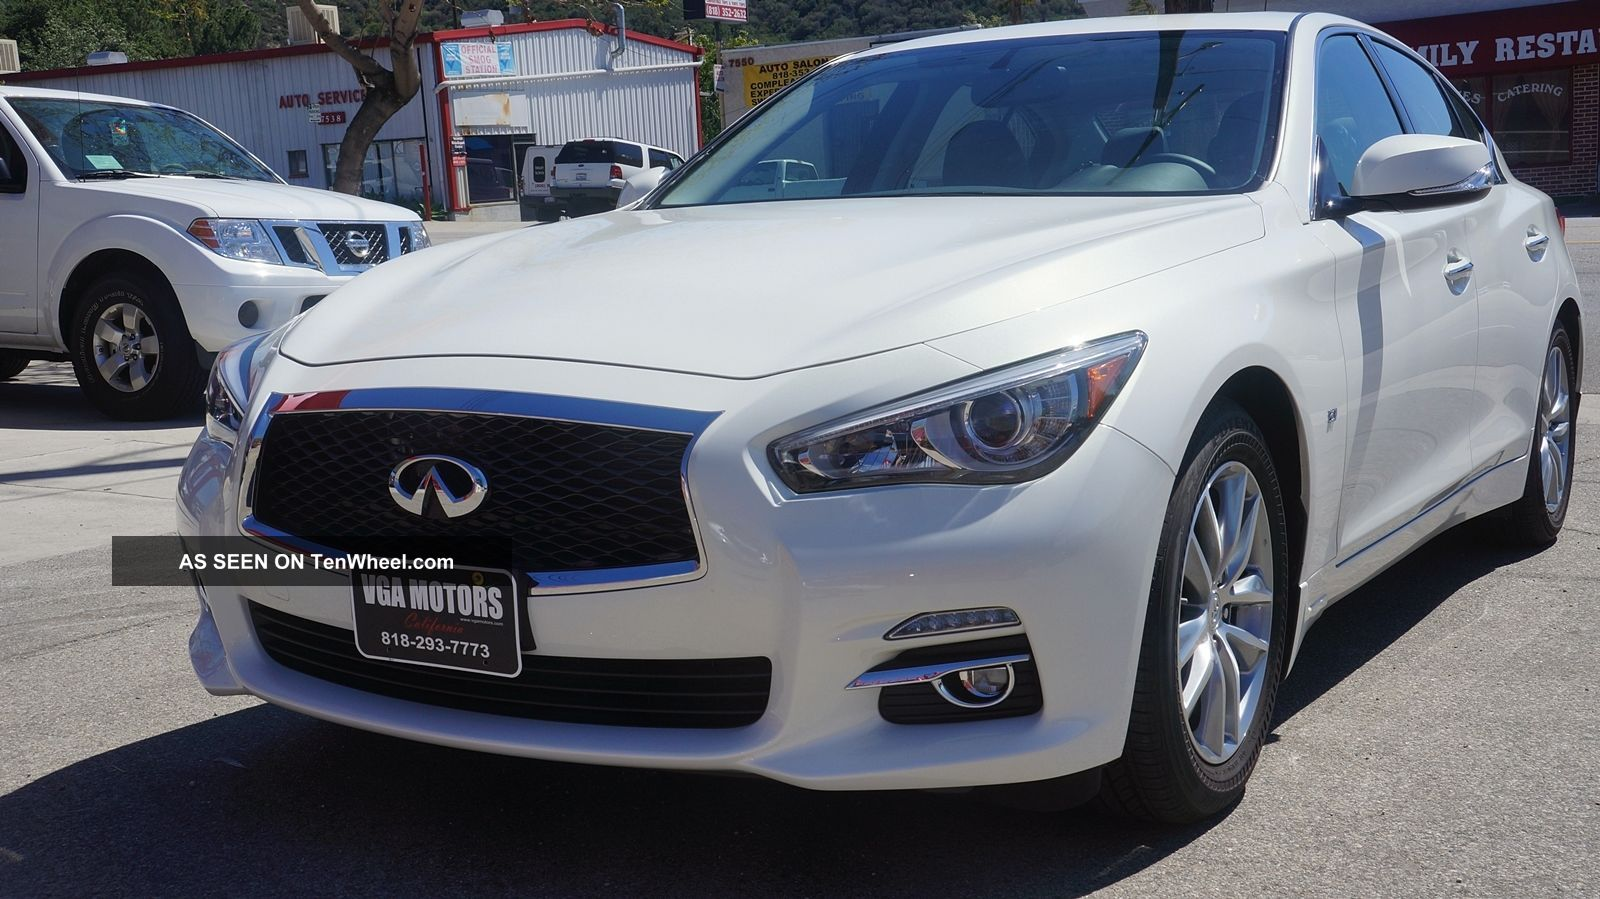 2014 infiniti q50 premium sedan 4 door 3 7l loaded. Black Bedroom Furniture Sets. Home Design Ideas